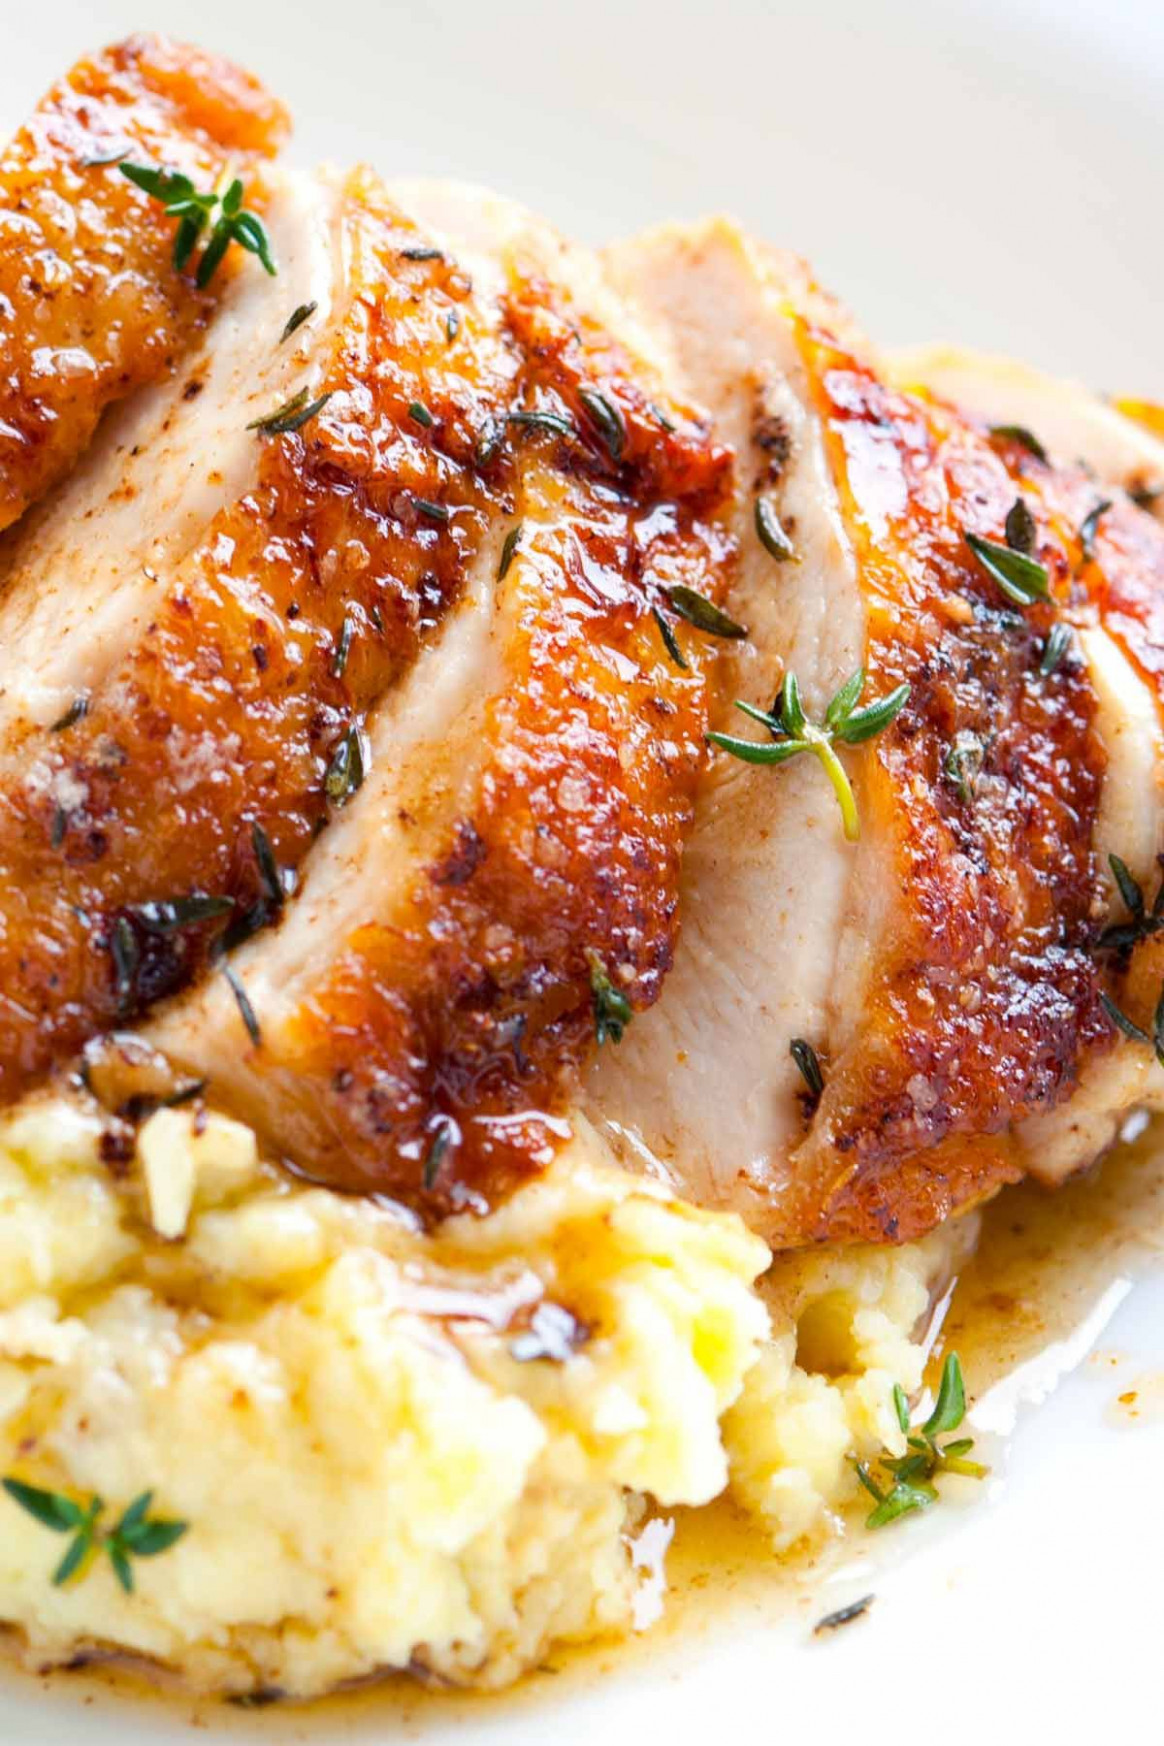 Easy Pan Roasted Chicken Breasts With Thyme - Chicken Recipes Easy To Cook